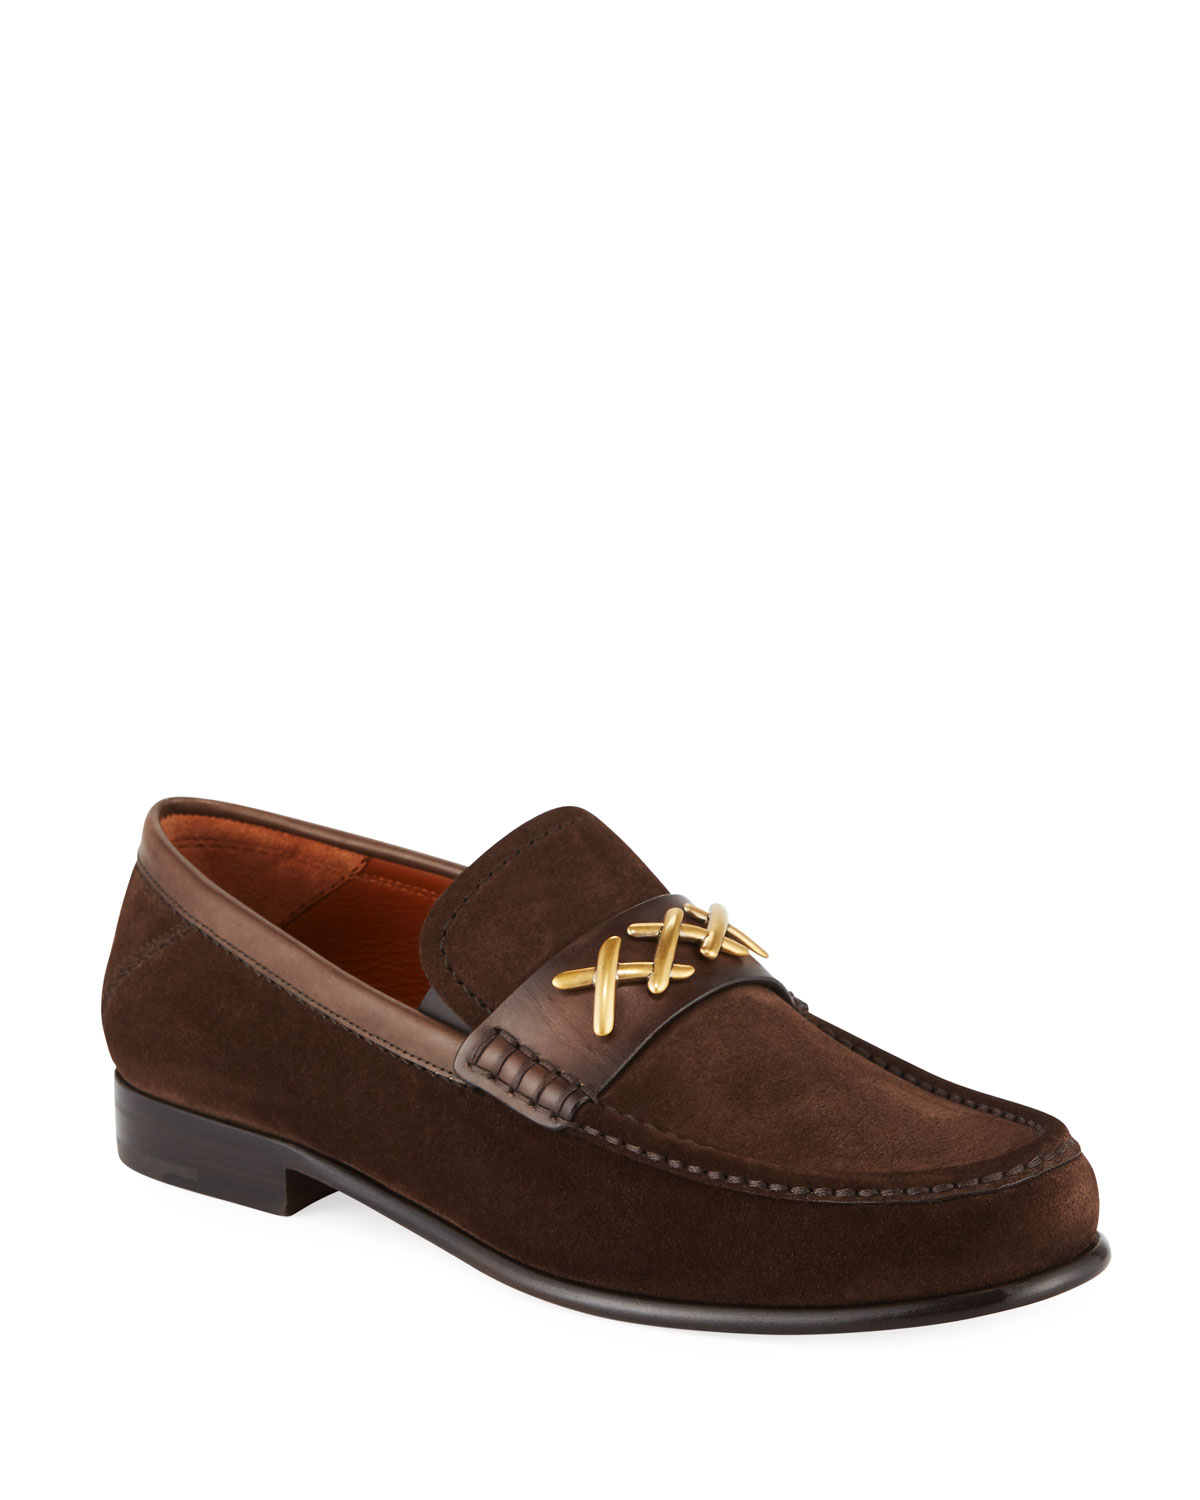 Asola Leather-trimmed Suede Penny Loafers - Army greenErmenegildo Zegna